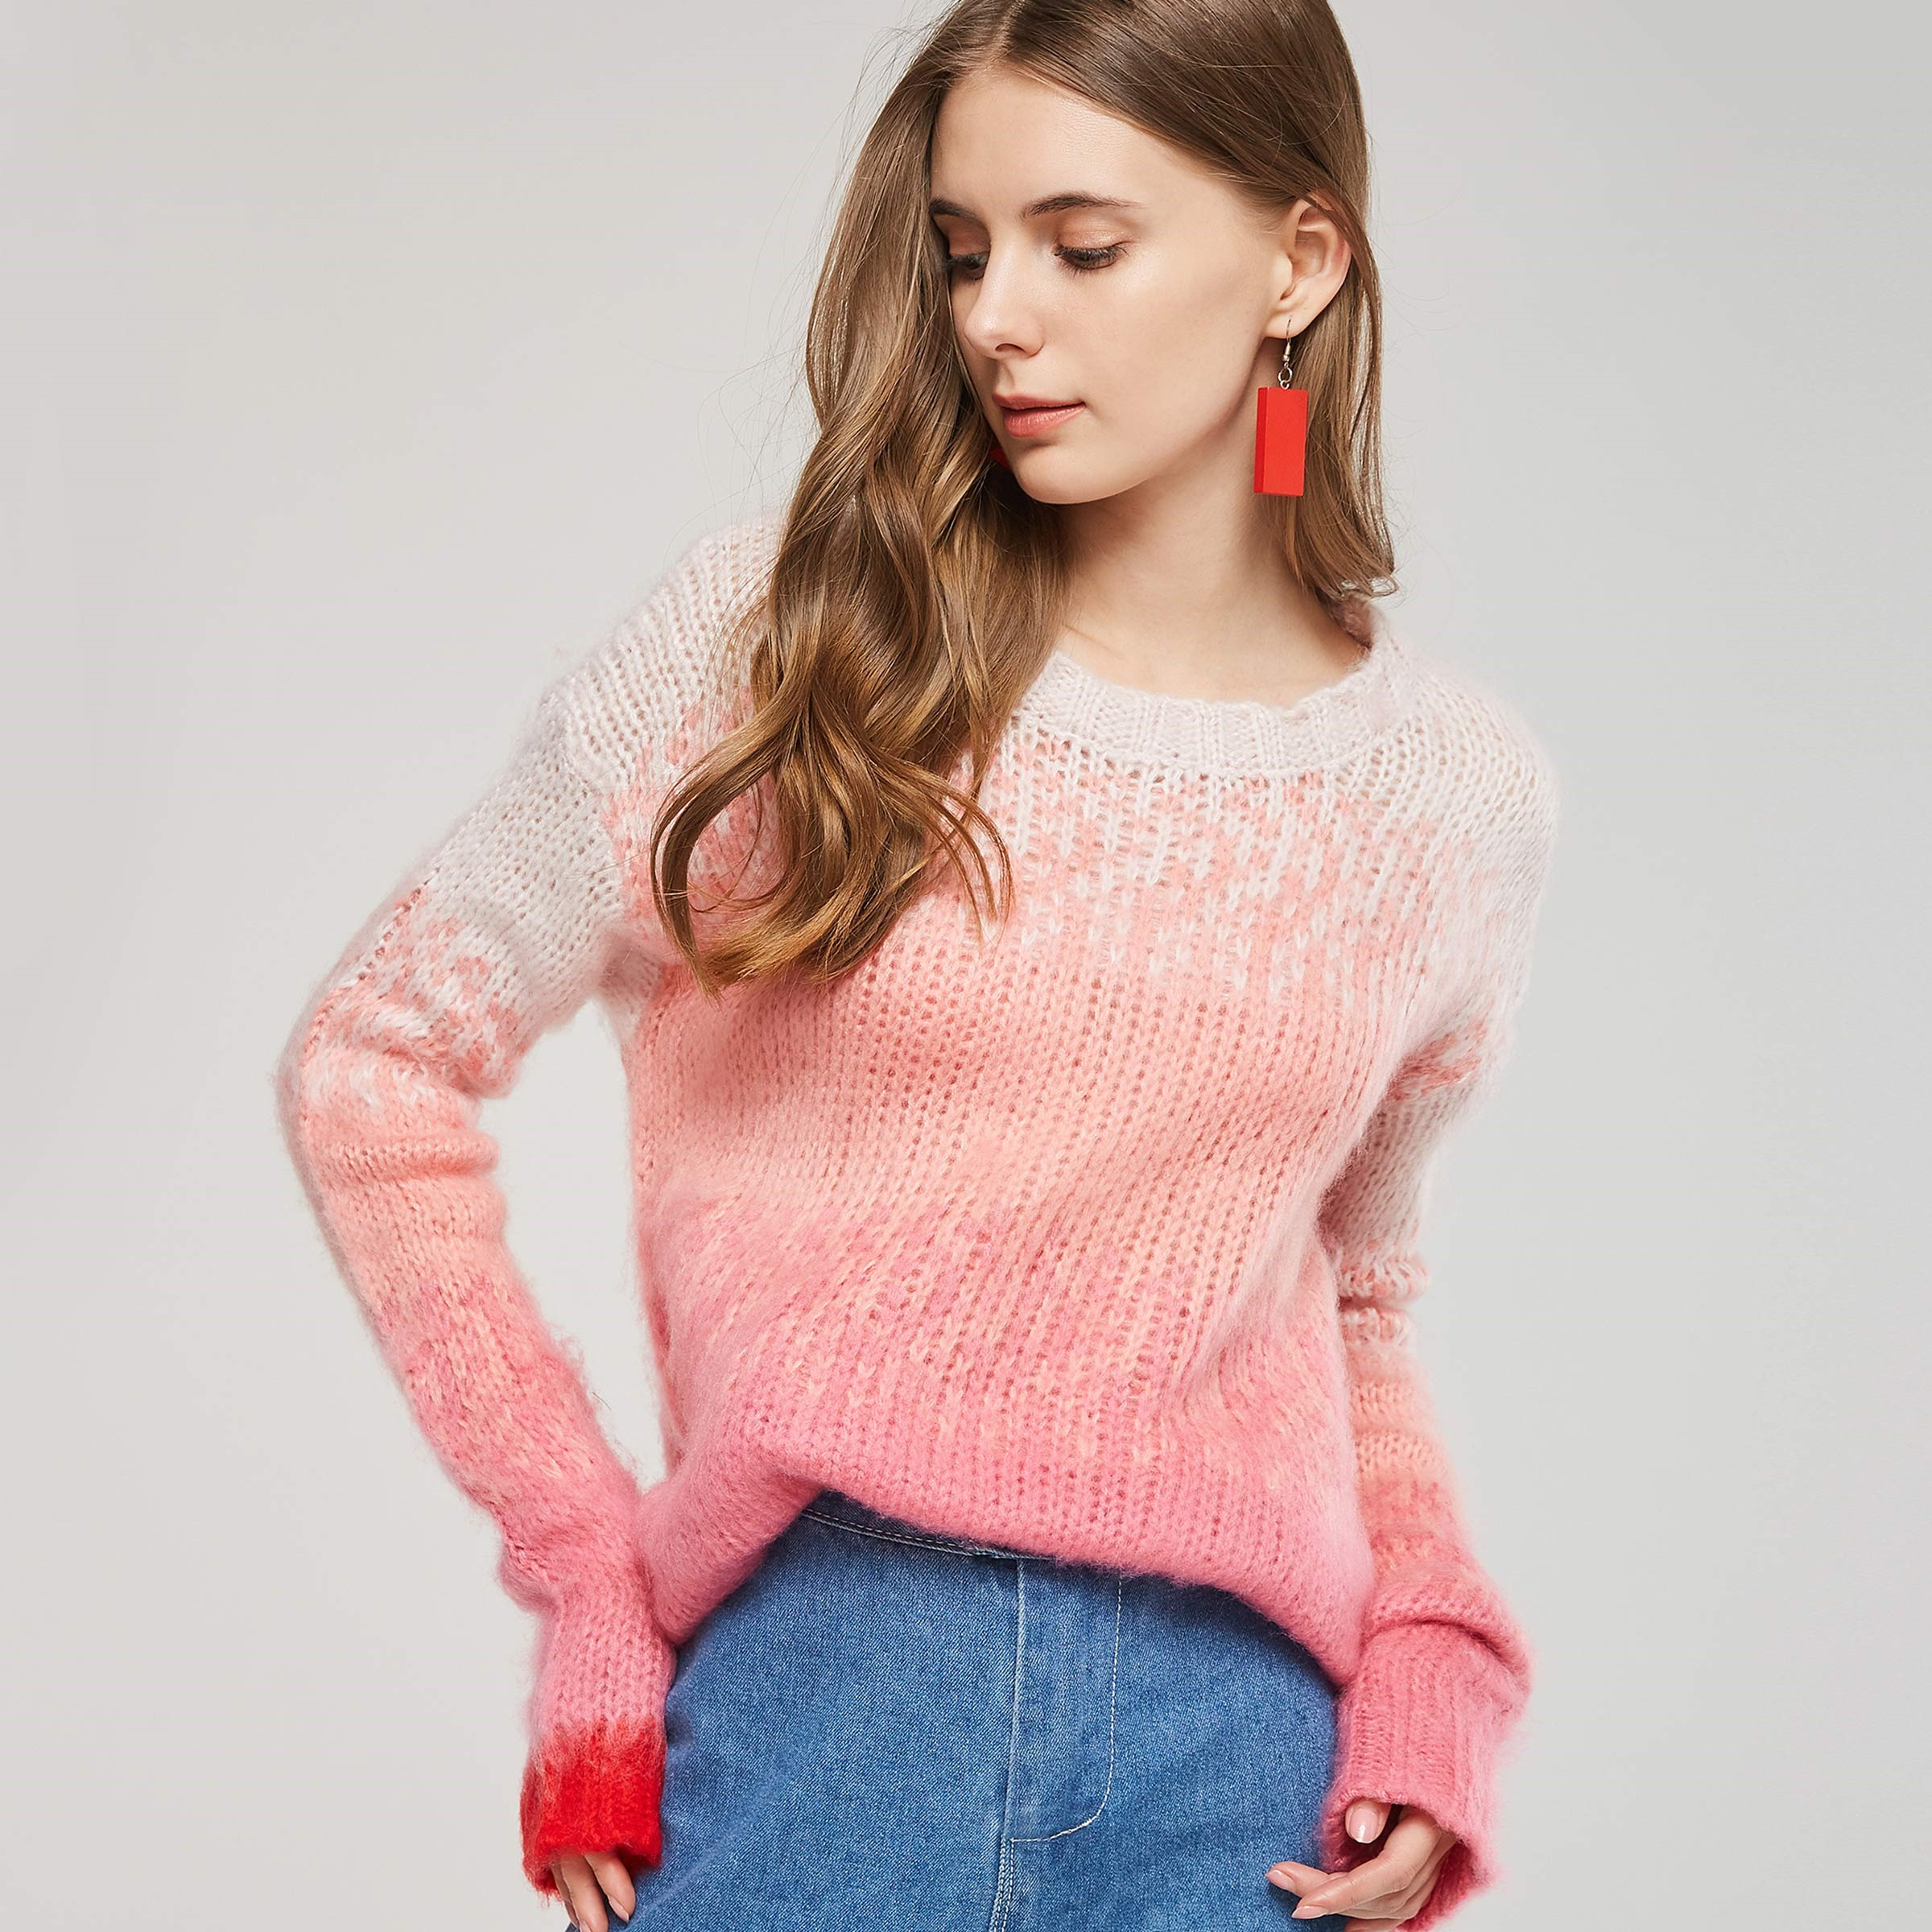 2018 Fall Sweet Preppy Style Office Lady Casual Pink Women Sweaters Loose Pullover Gradient Girls Lovely Female Simple Tops